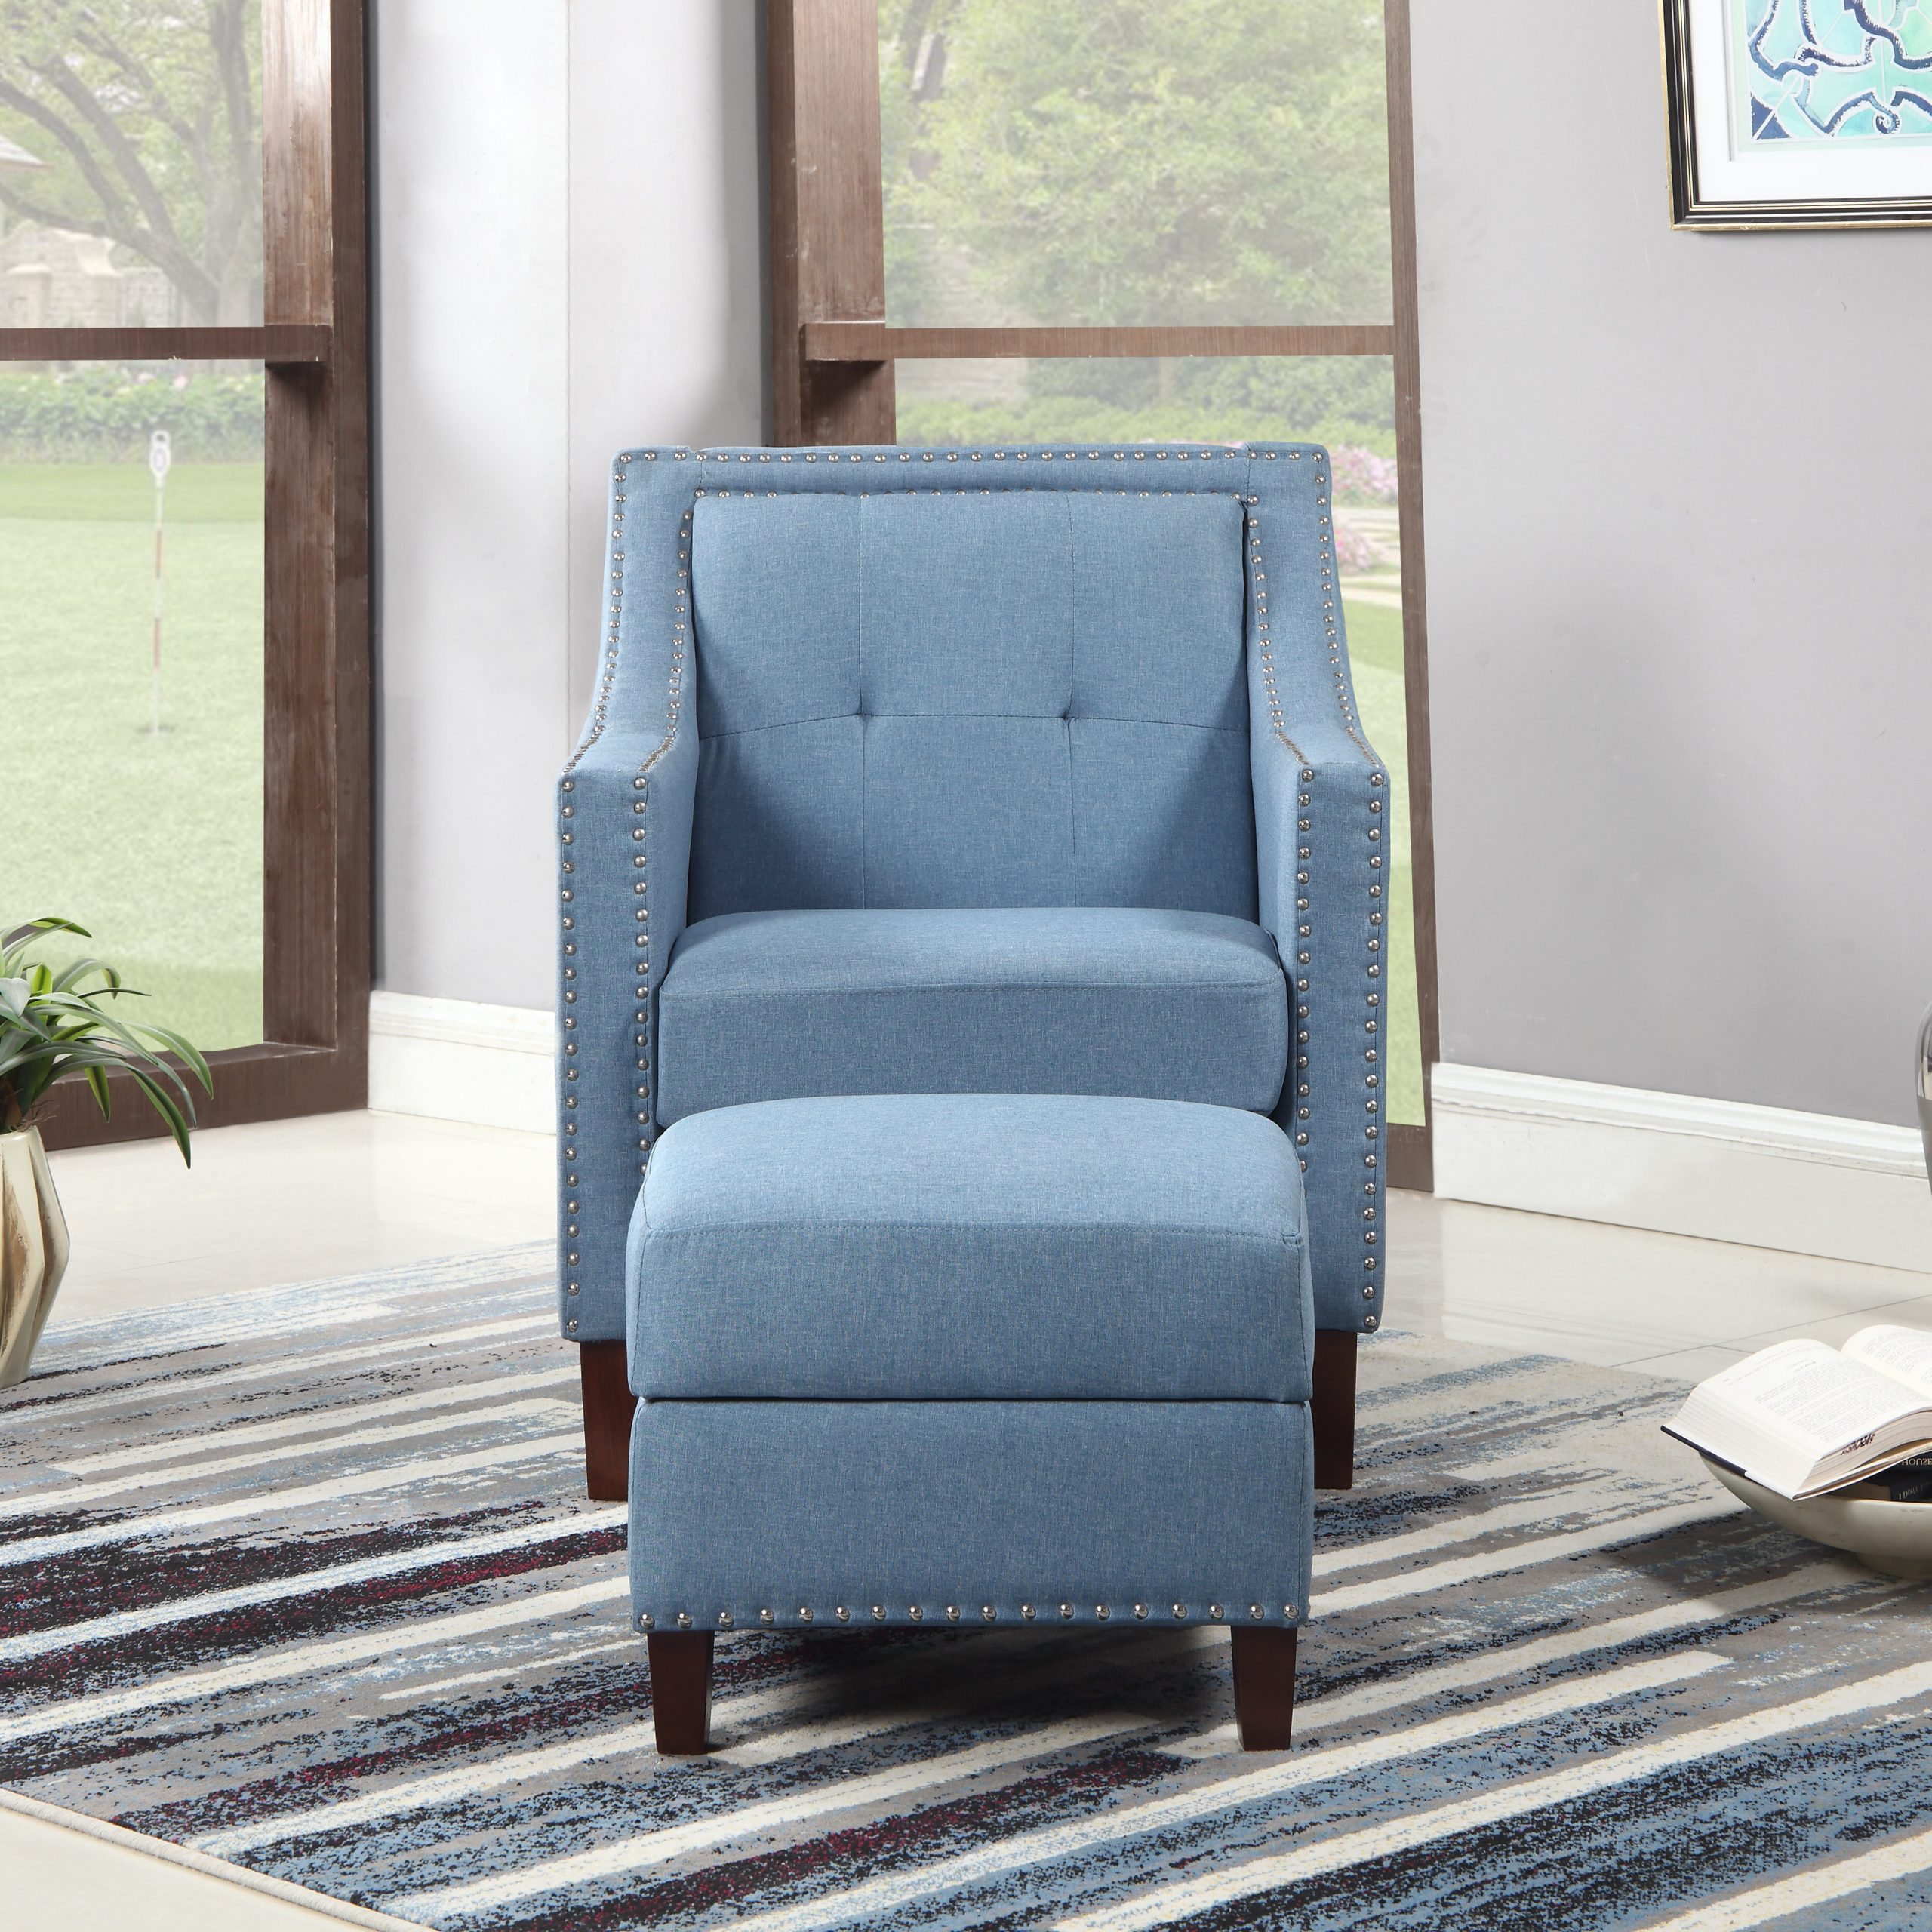 2020 Dara Armchairs Throughout Sonya Armchair Ottoman (View 10 of 20)